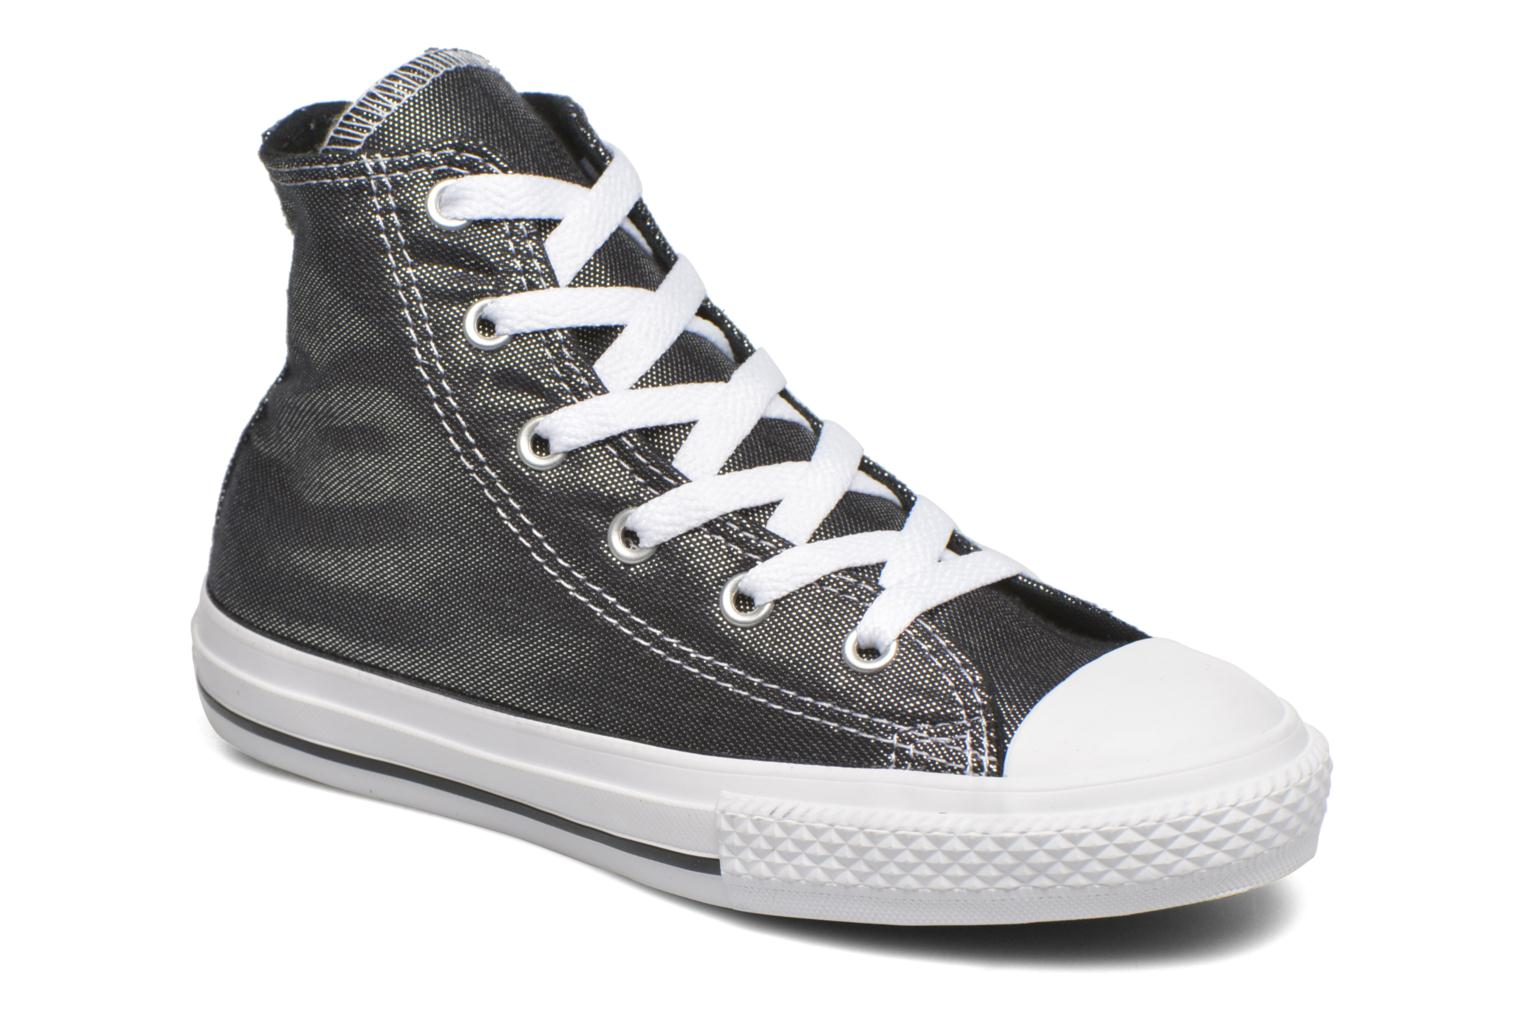 Chuck Taylor All Star Hi Silver/Black/White